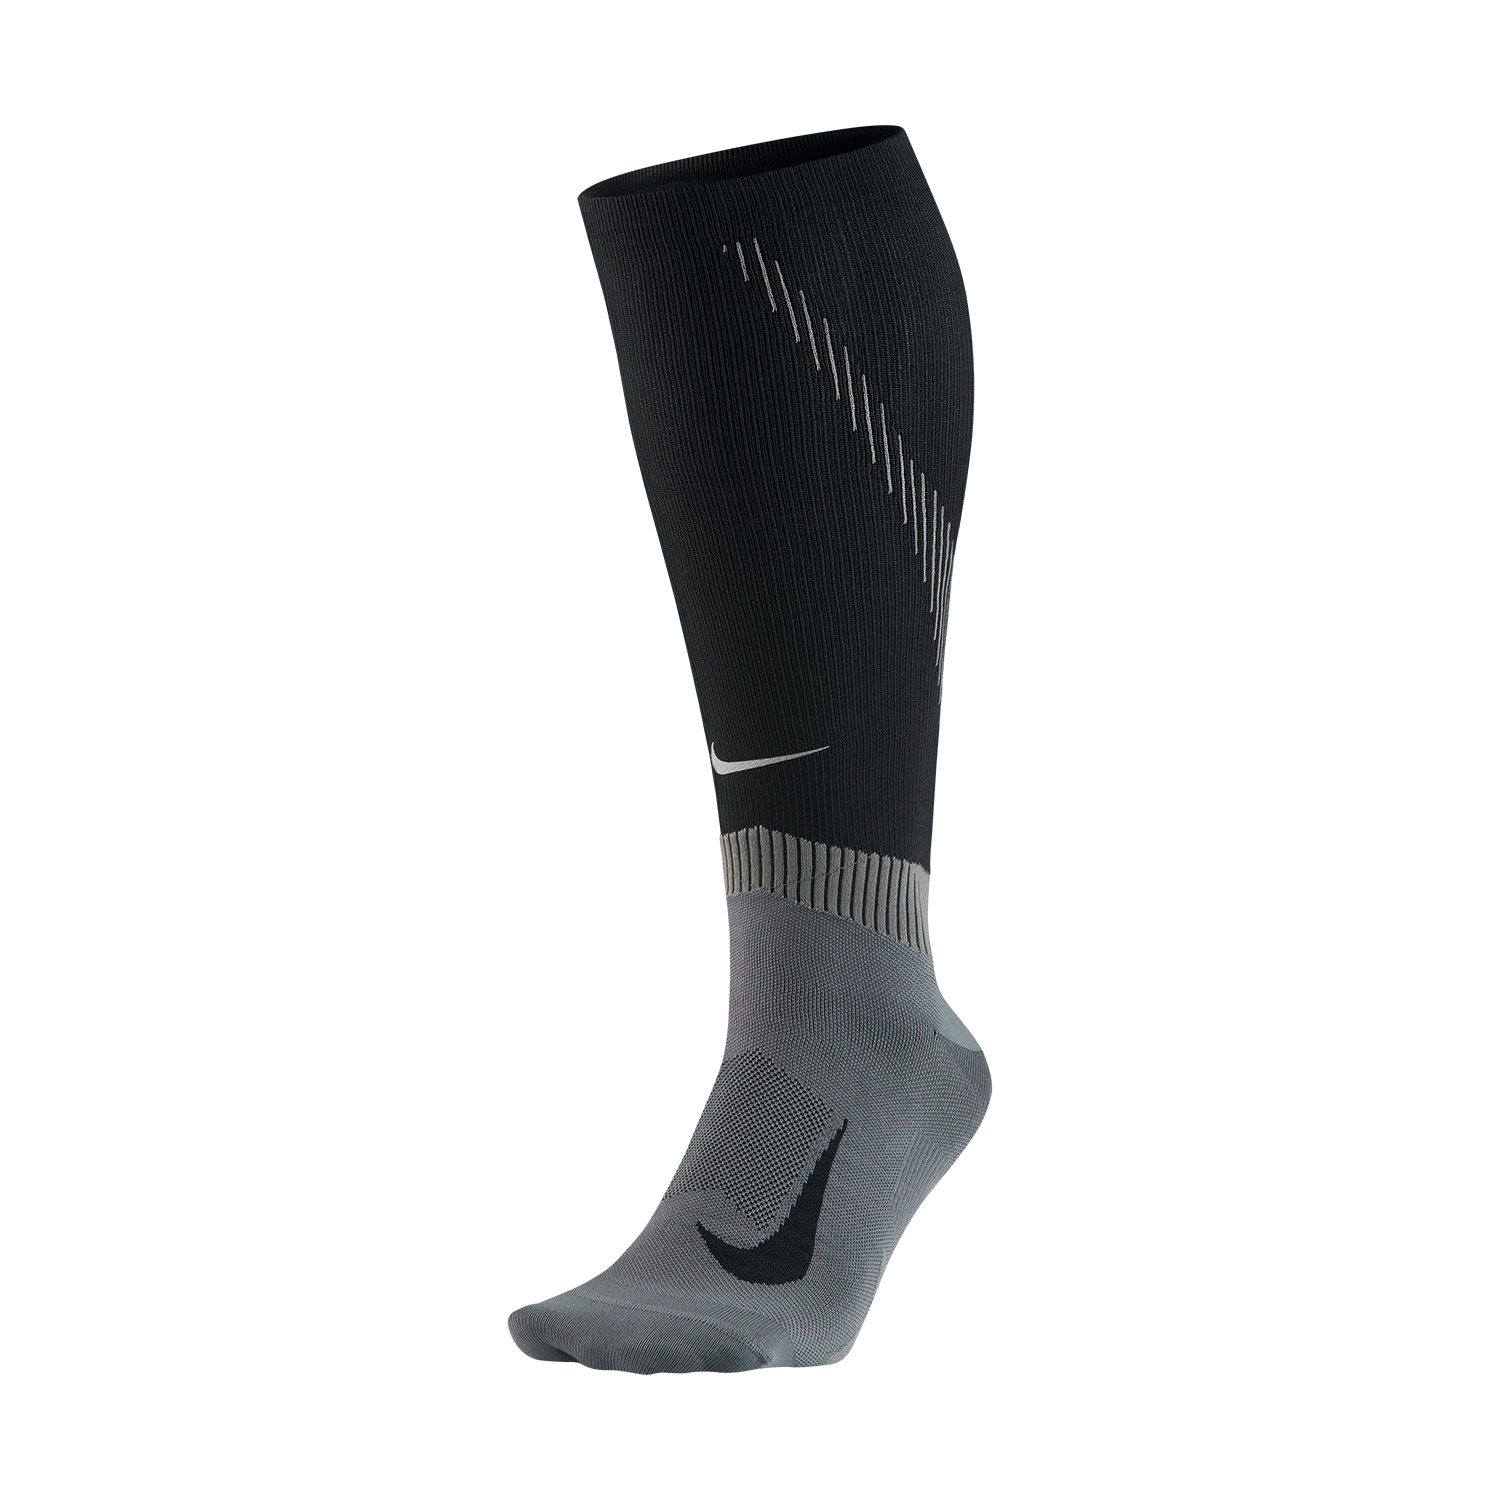 Nike Elite Compression Over The Calf Socks - Black